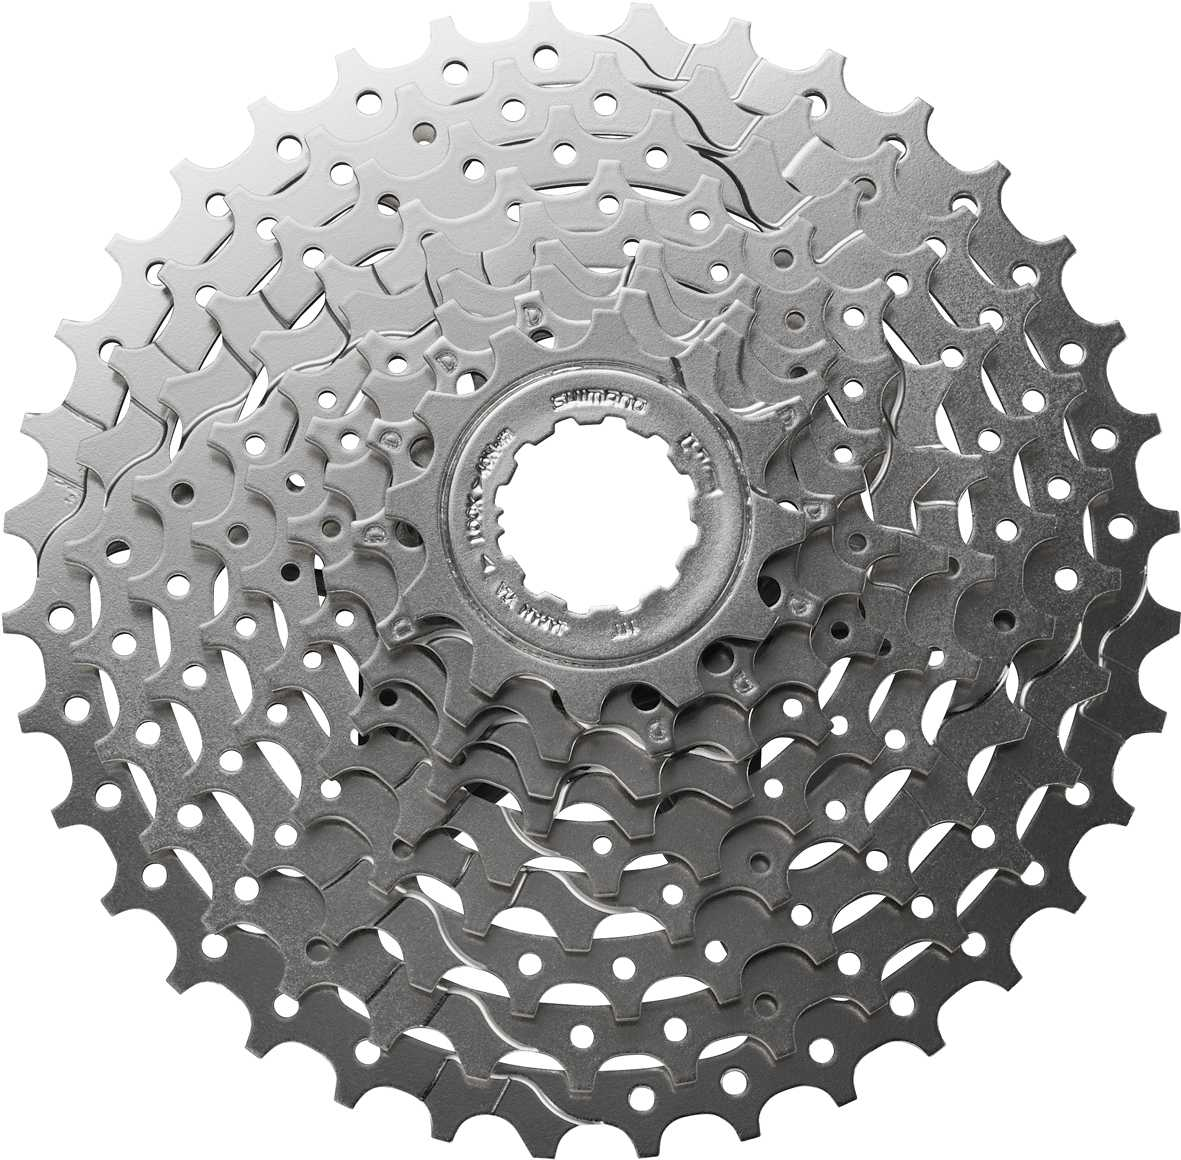 Shimano Alivio HG400  9 Speed 11-34 Tooth Cassette